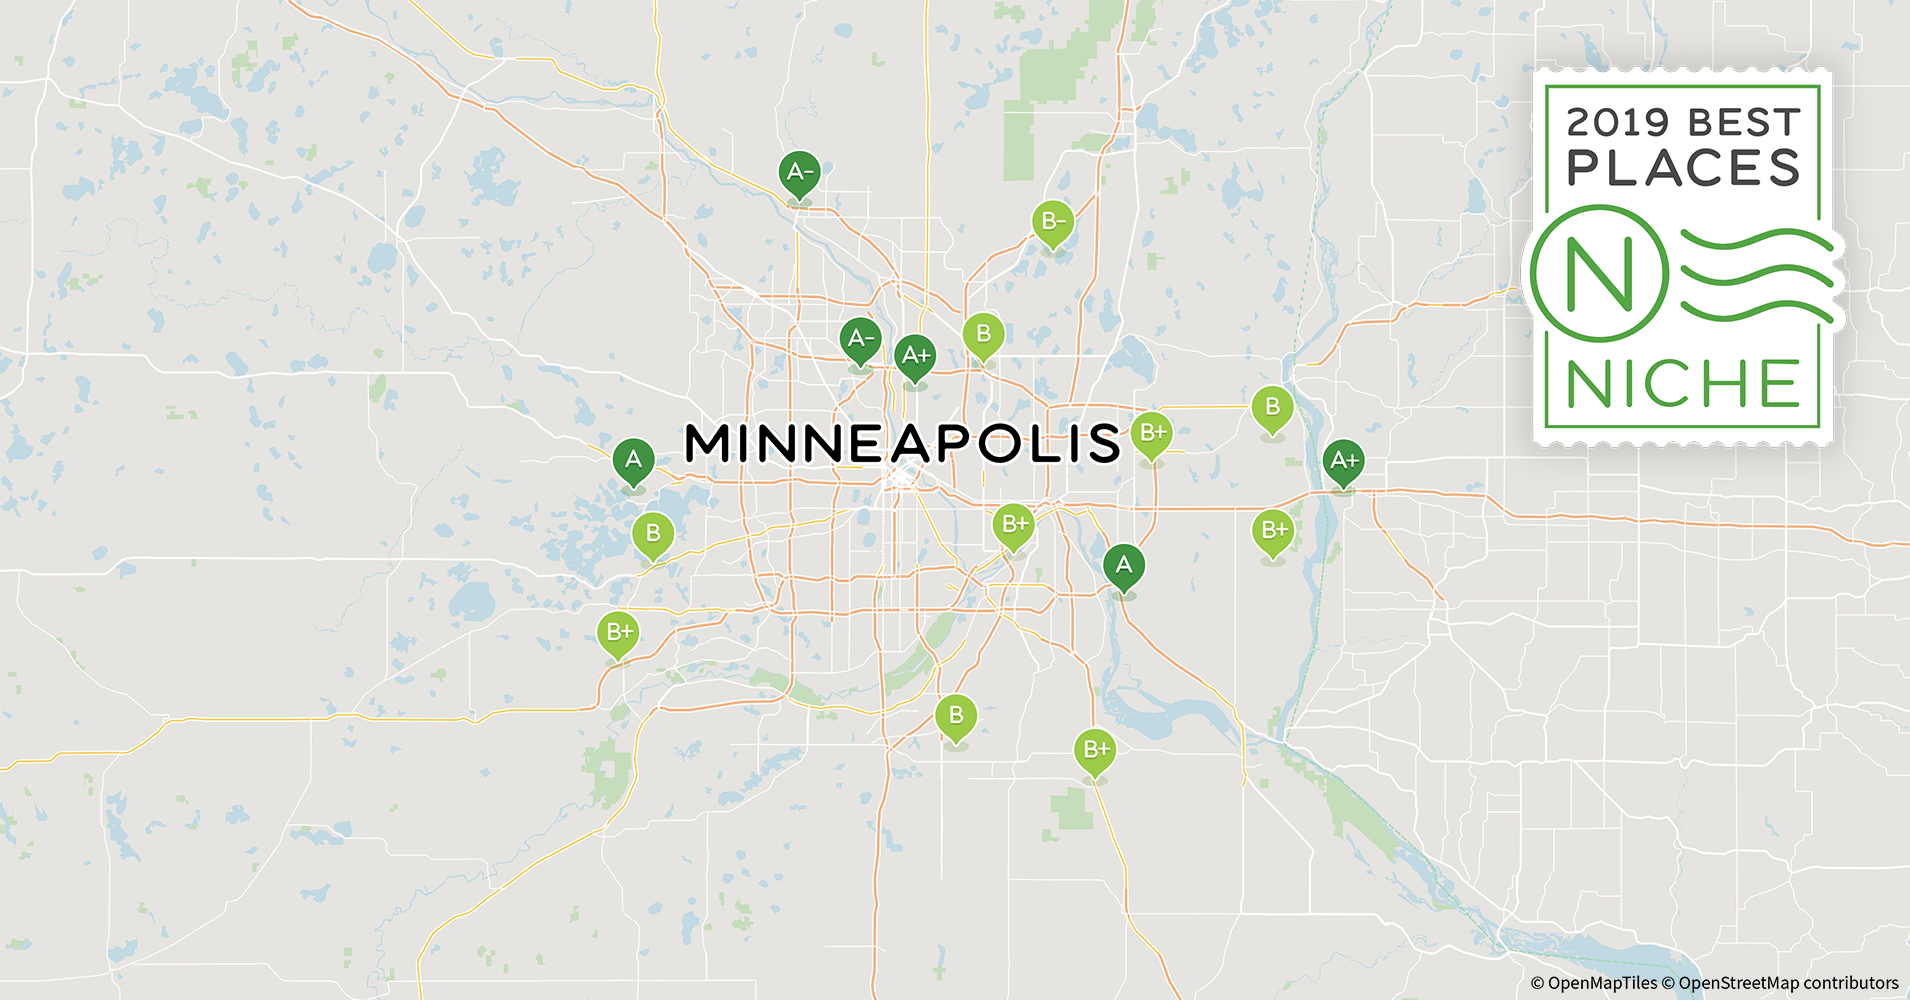 2019 Safe Neighborhoods in Minneapolis-St. Paul Area - Niche